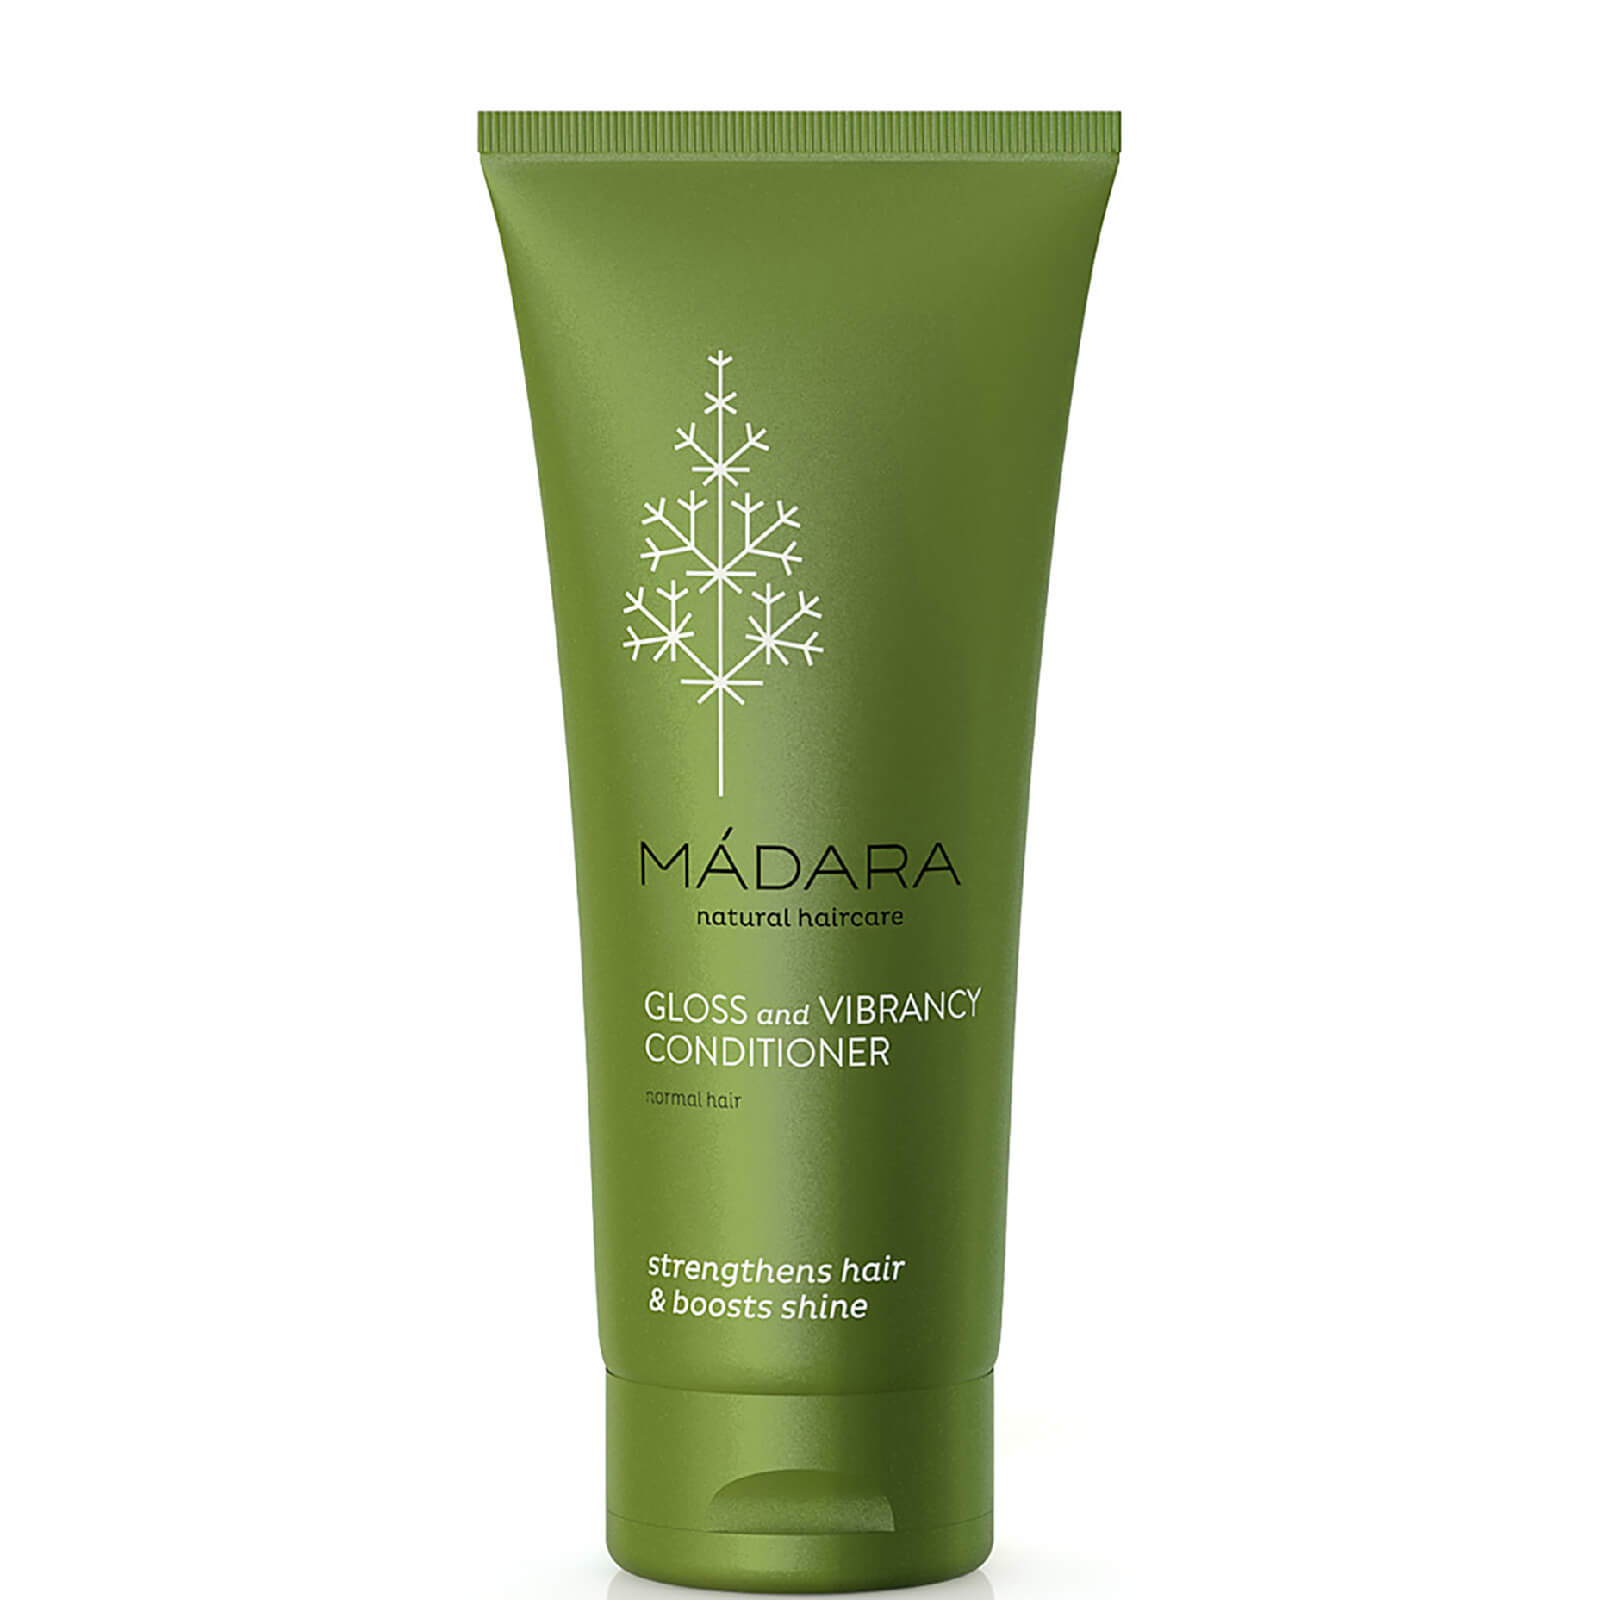 MÁDARA Gloss and Vibrancy Conditioner 200ml